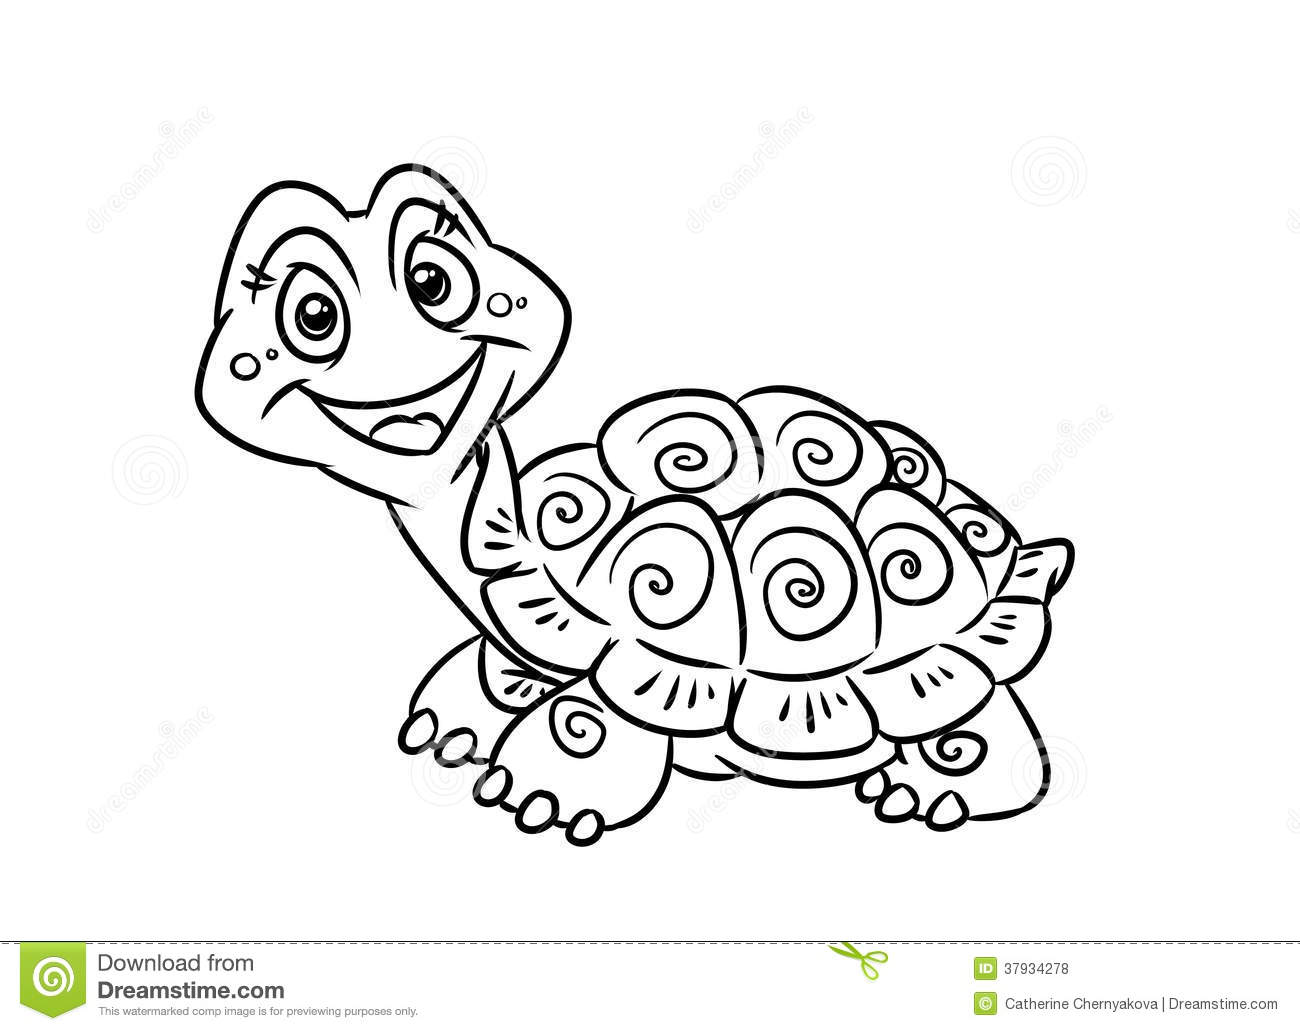 Turtle fun coloring pages stock illustration. Illustration